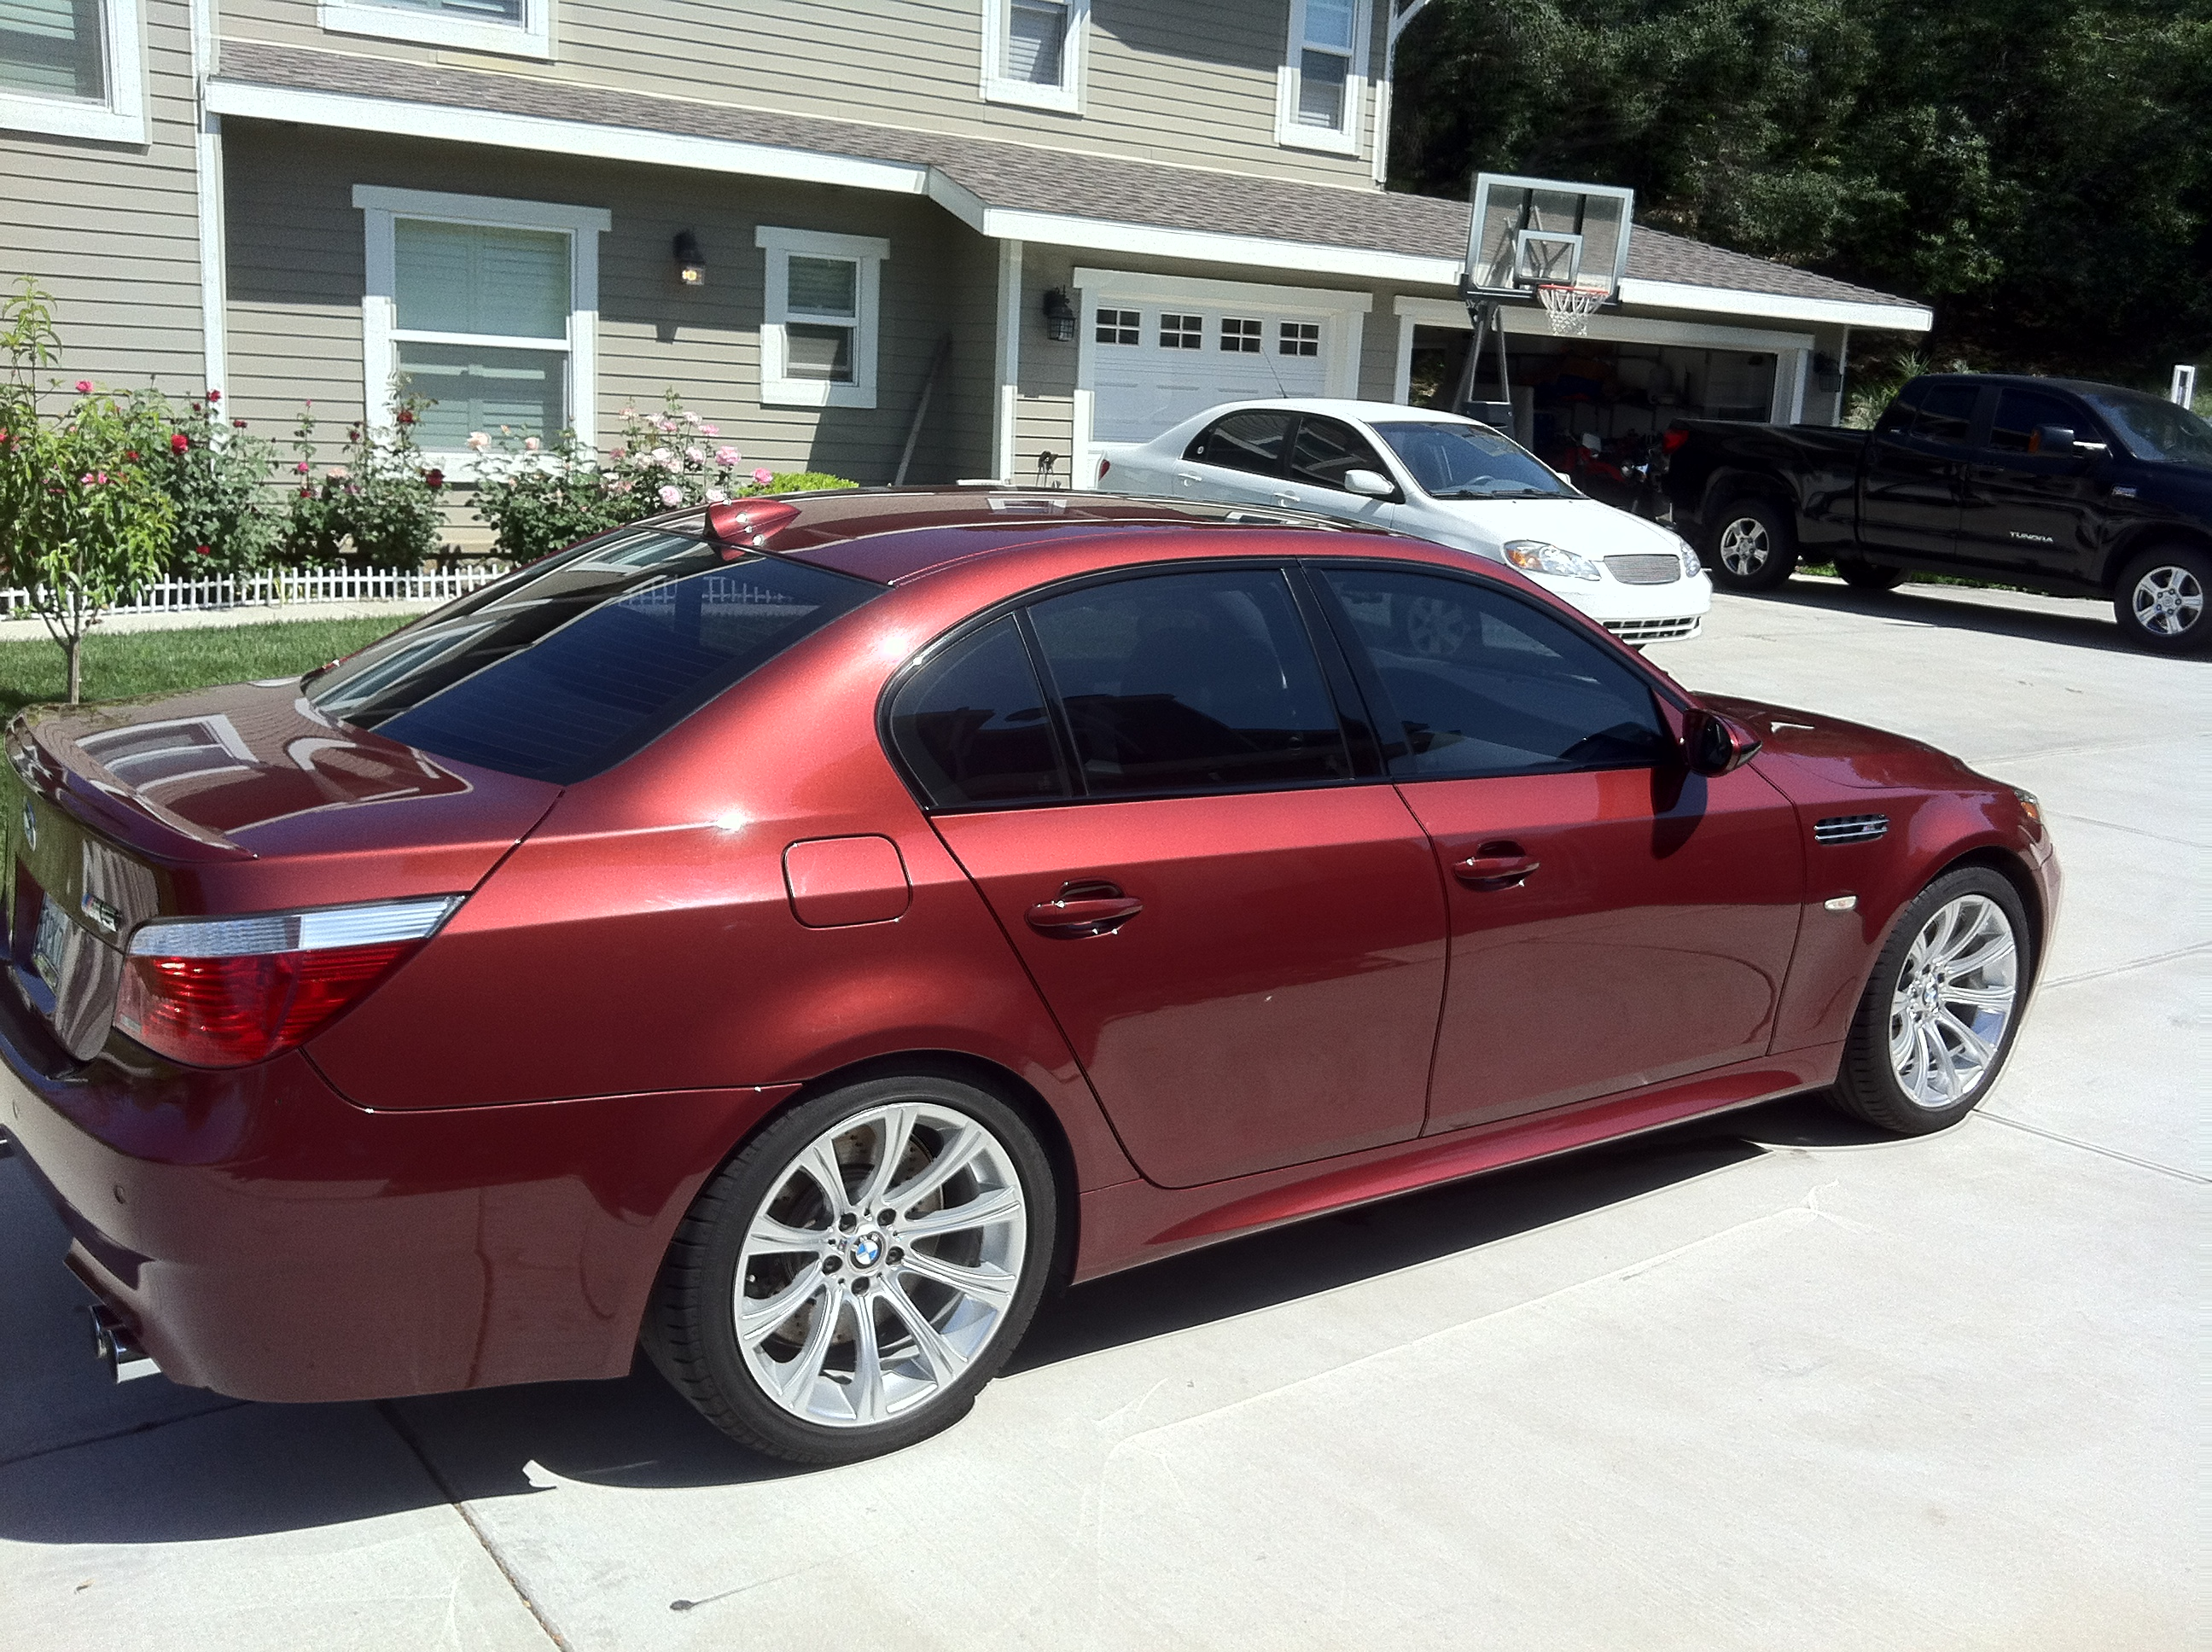 Worksheet. E60 0310 For Sale 2006 BMW M5 E60 Indianapolis Red  BMW M5